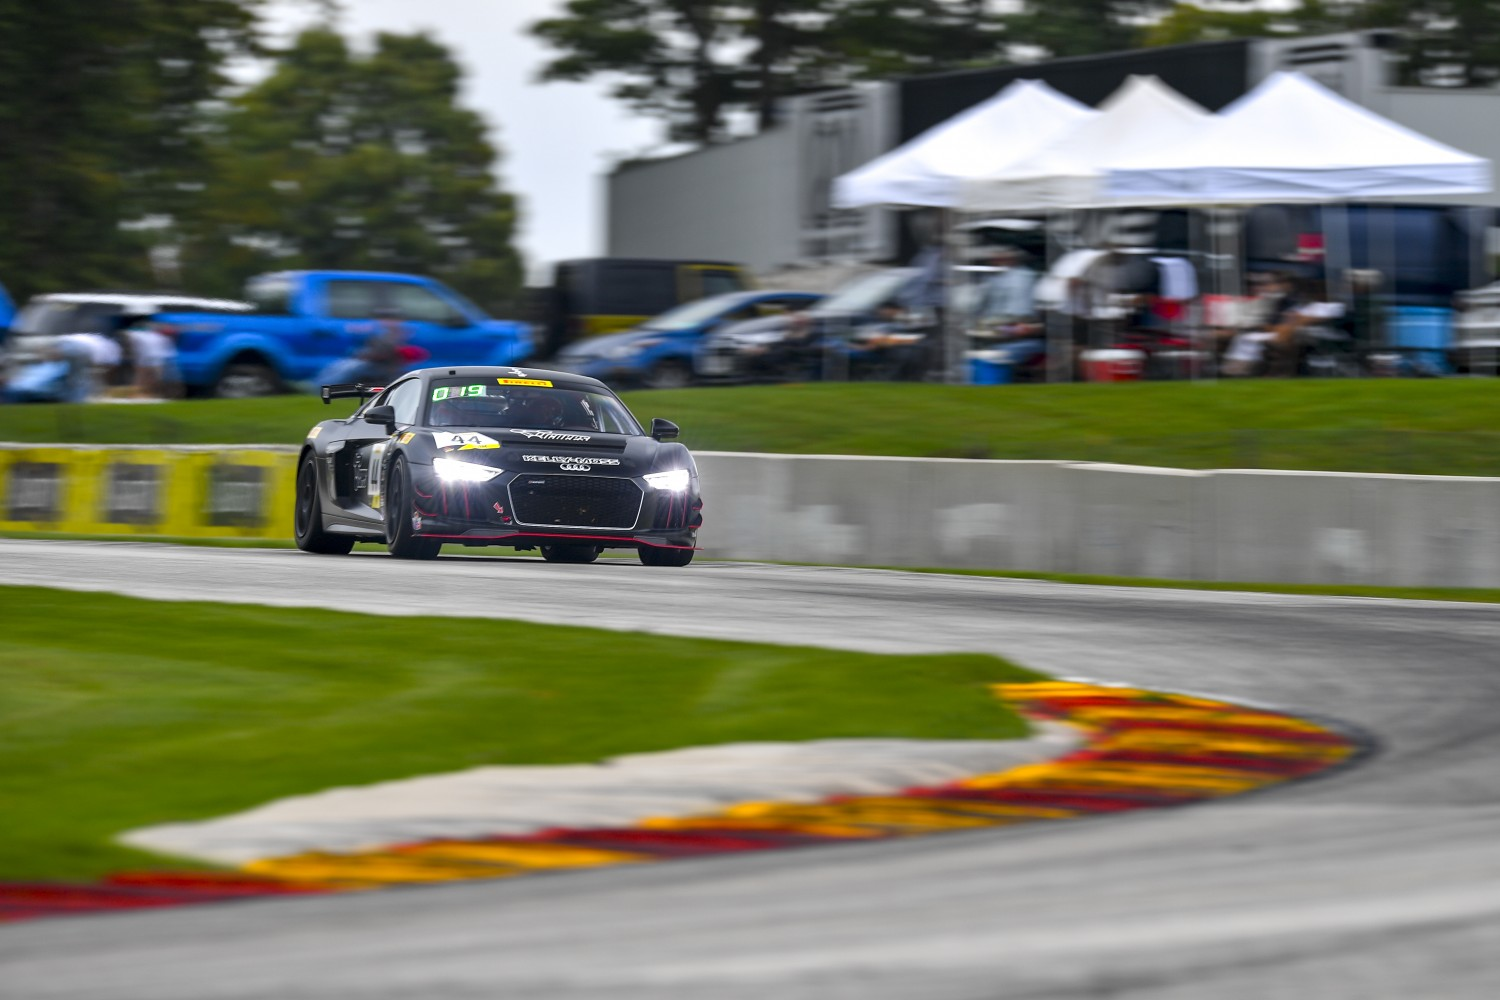 #44 Audi R8 LMS GT4 of Greg Palmer  with Kelly-Moss/Photon Motorsports  Road America World Challenge America , Elkhart Lake WI | Gavin Baker/SRO